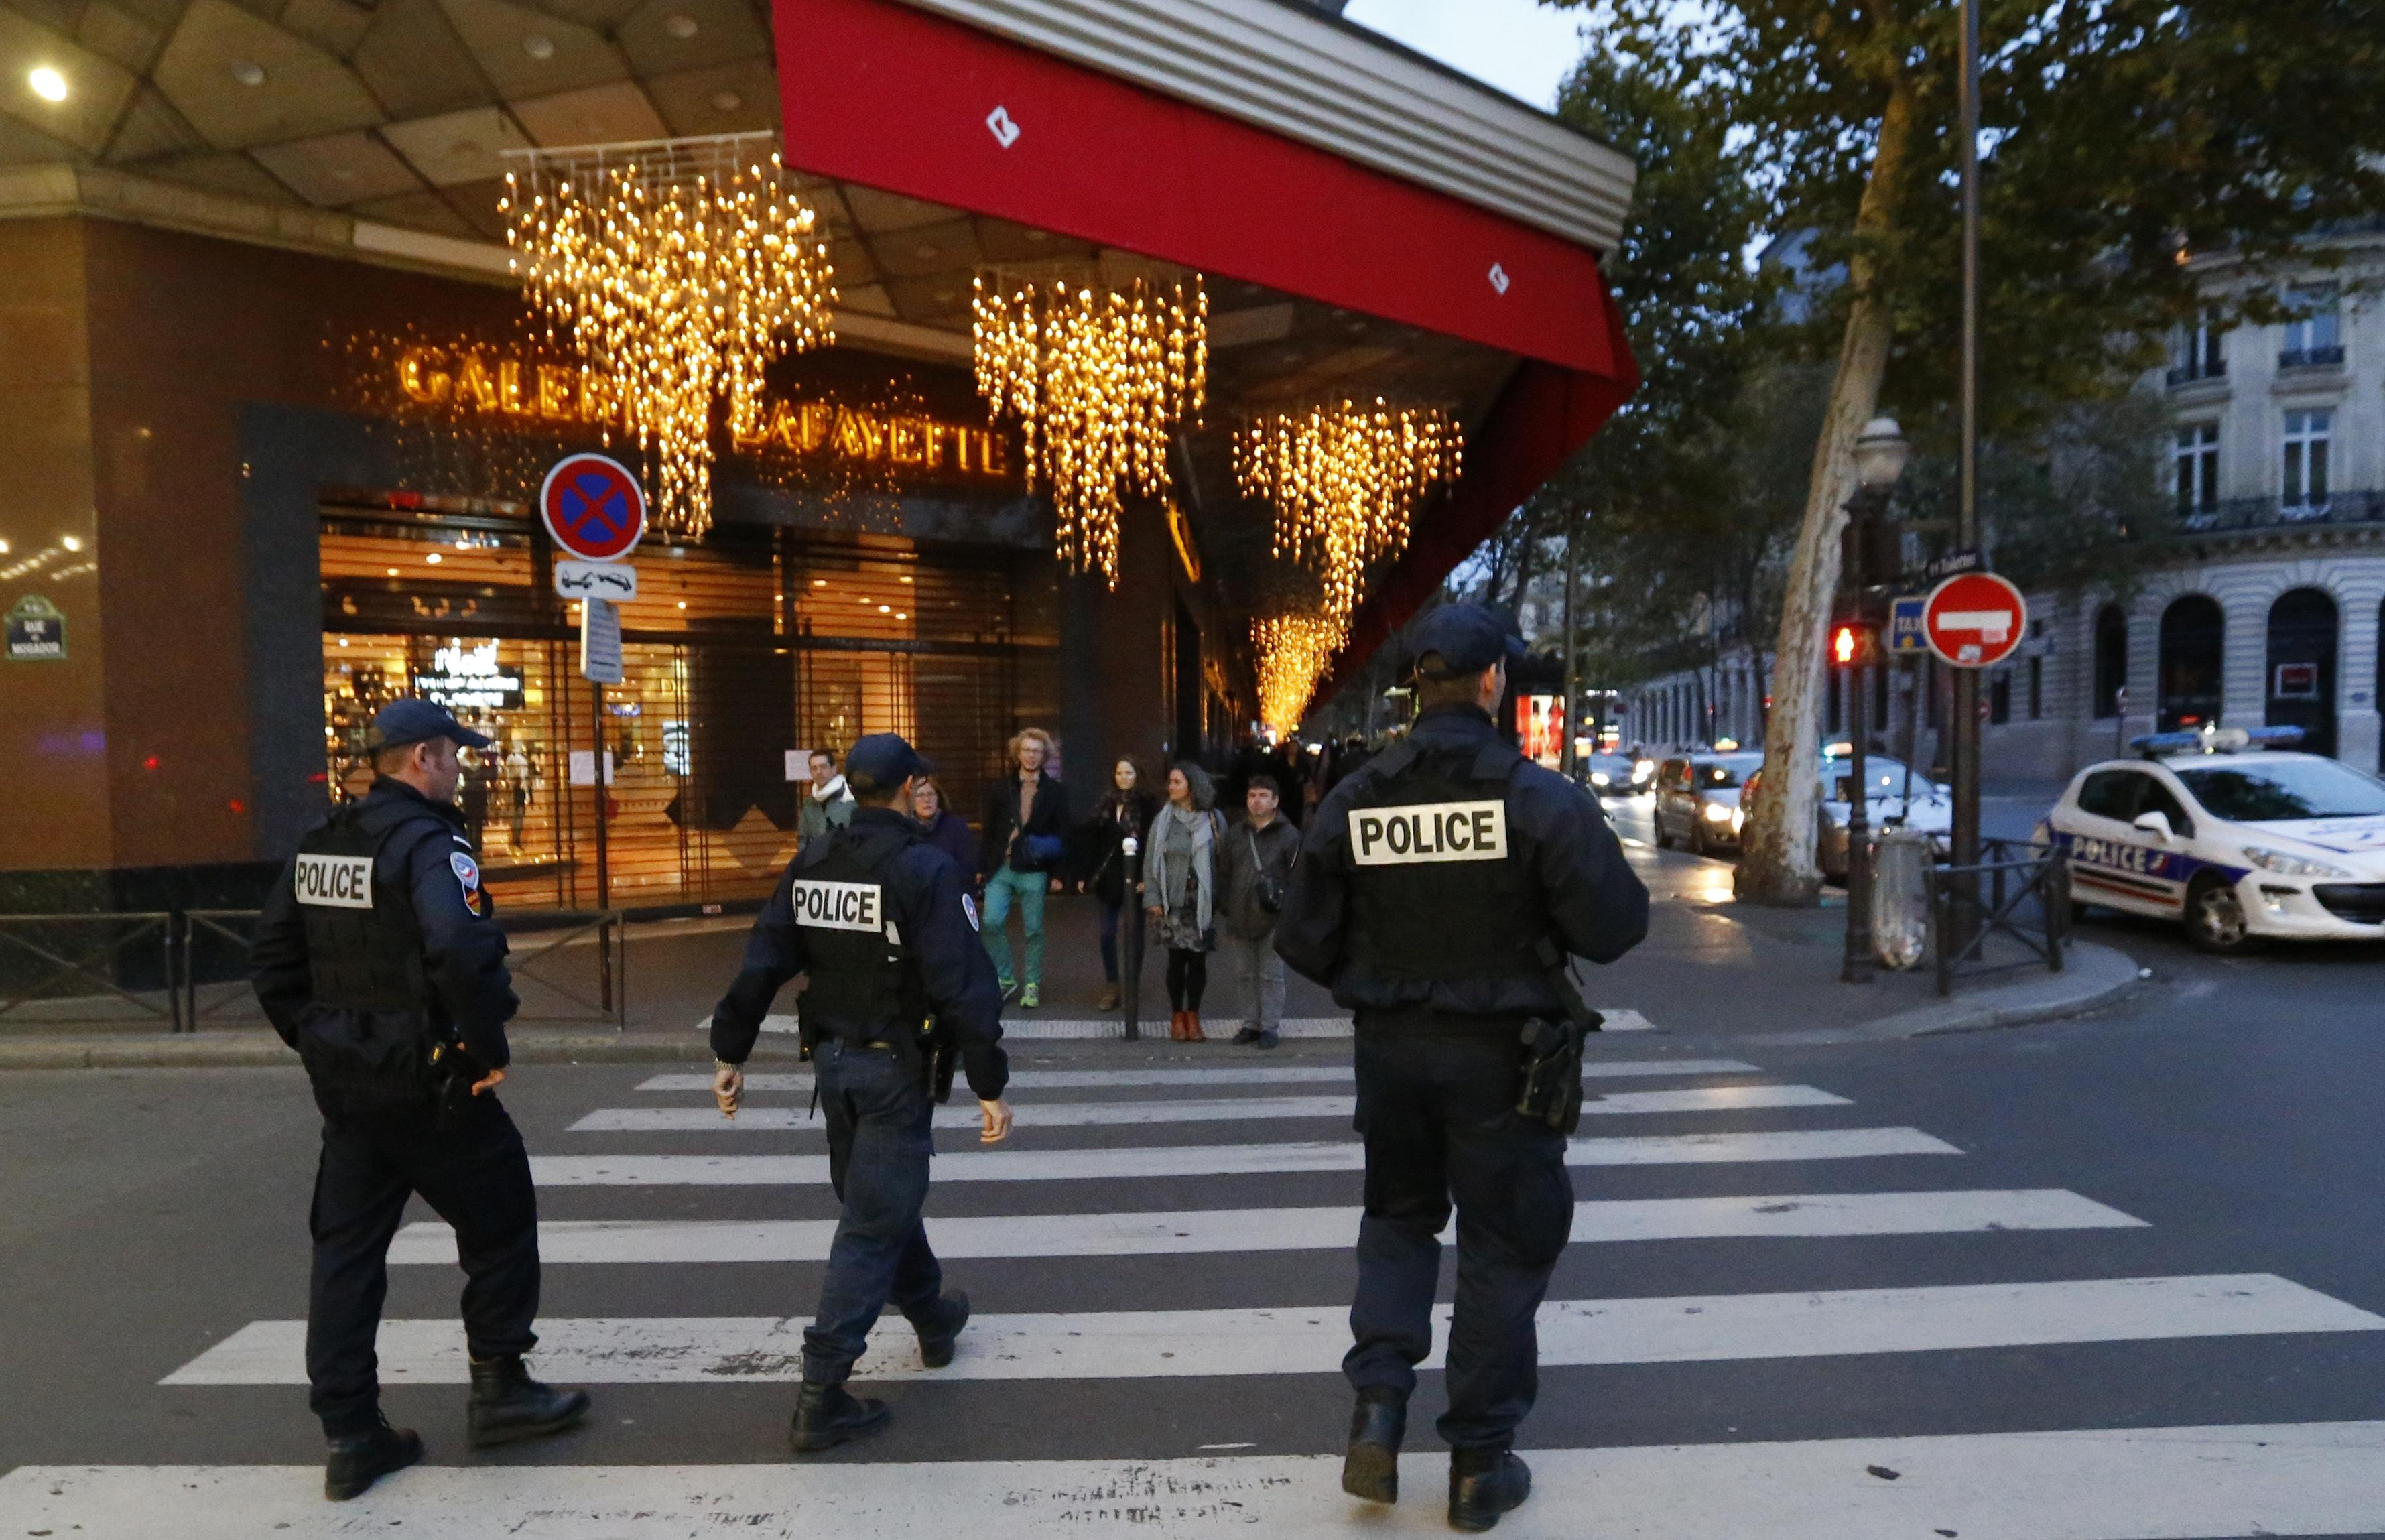 French police stand patrol in Paris